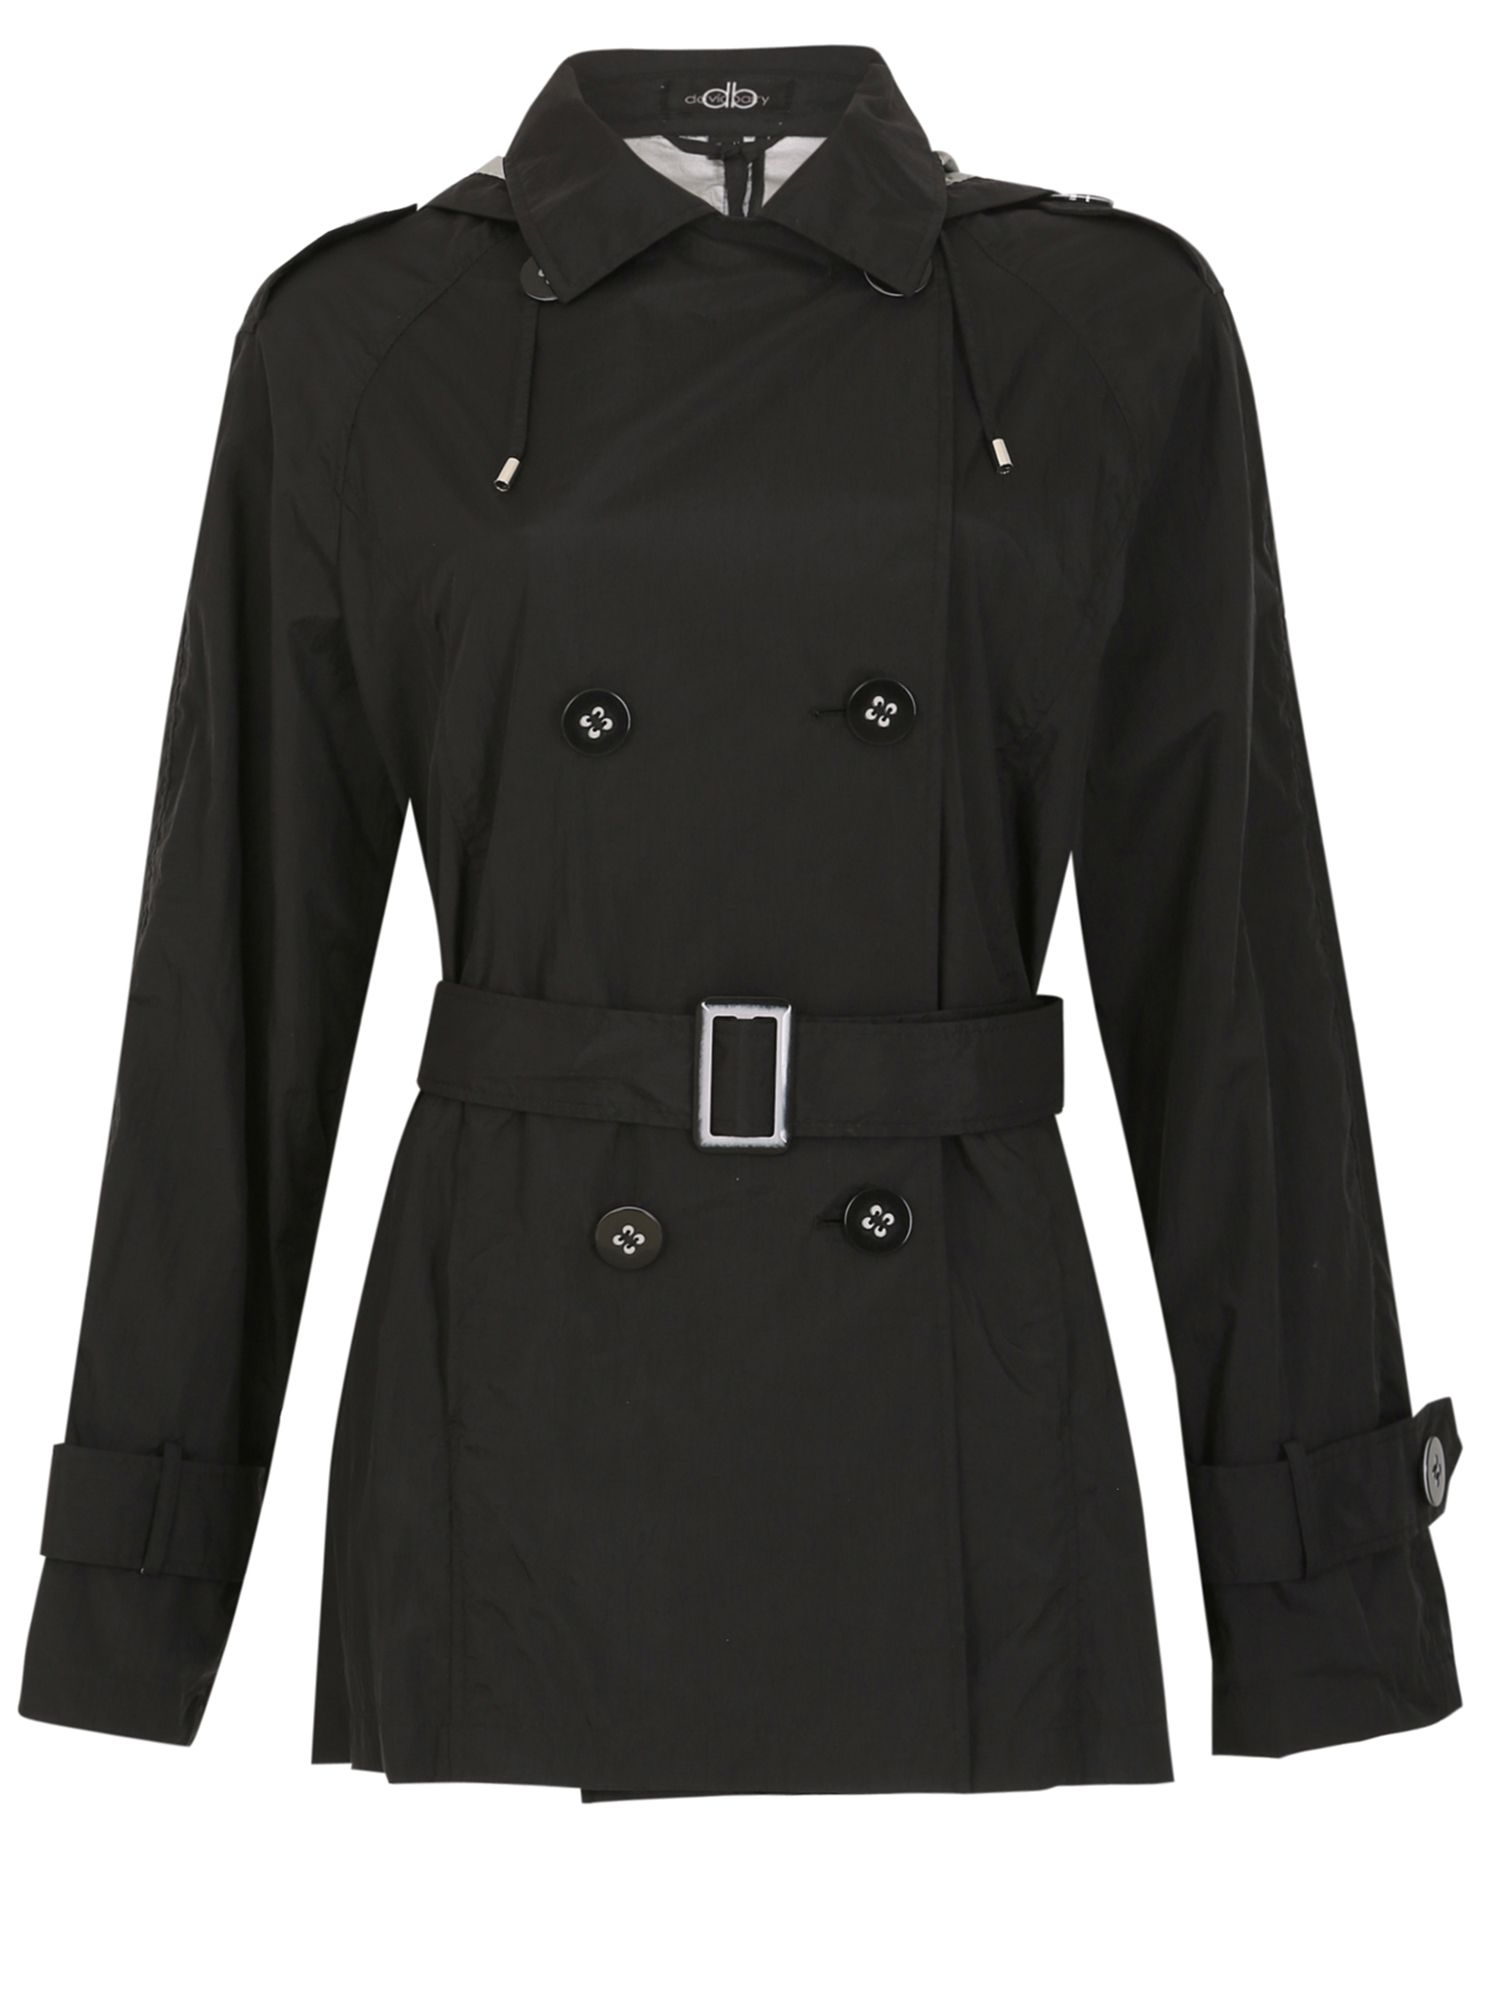 David Barry Memory Fabric Trench Rain Jacket, Black